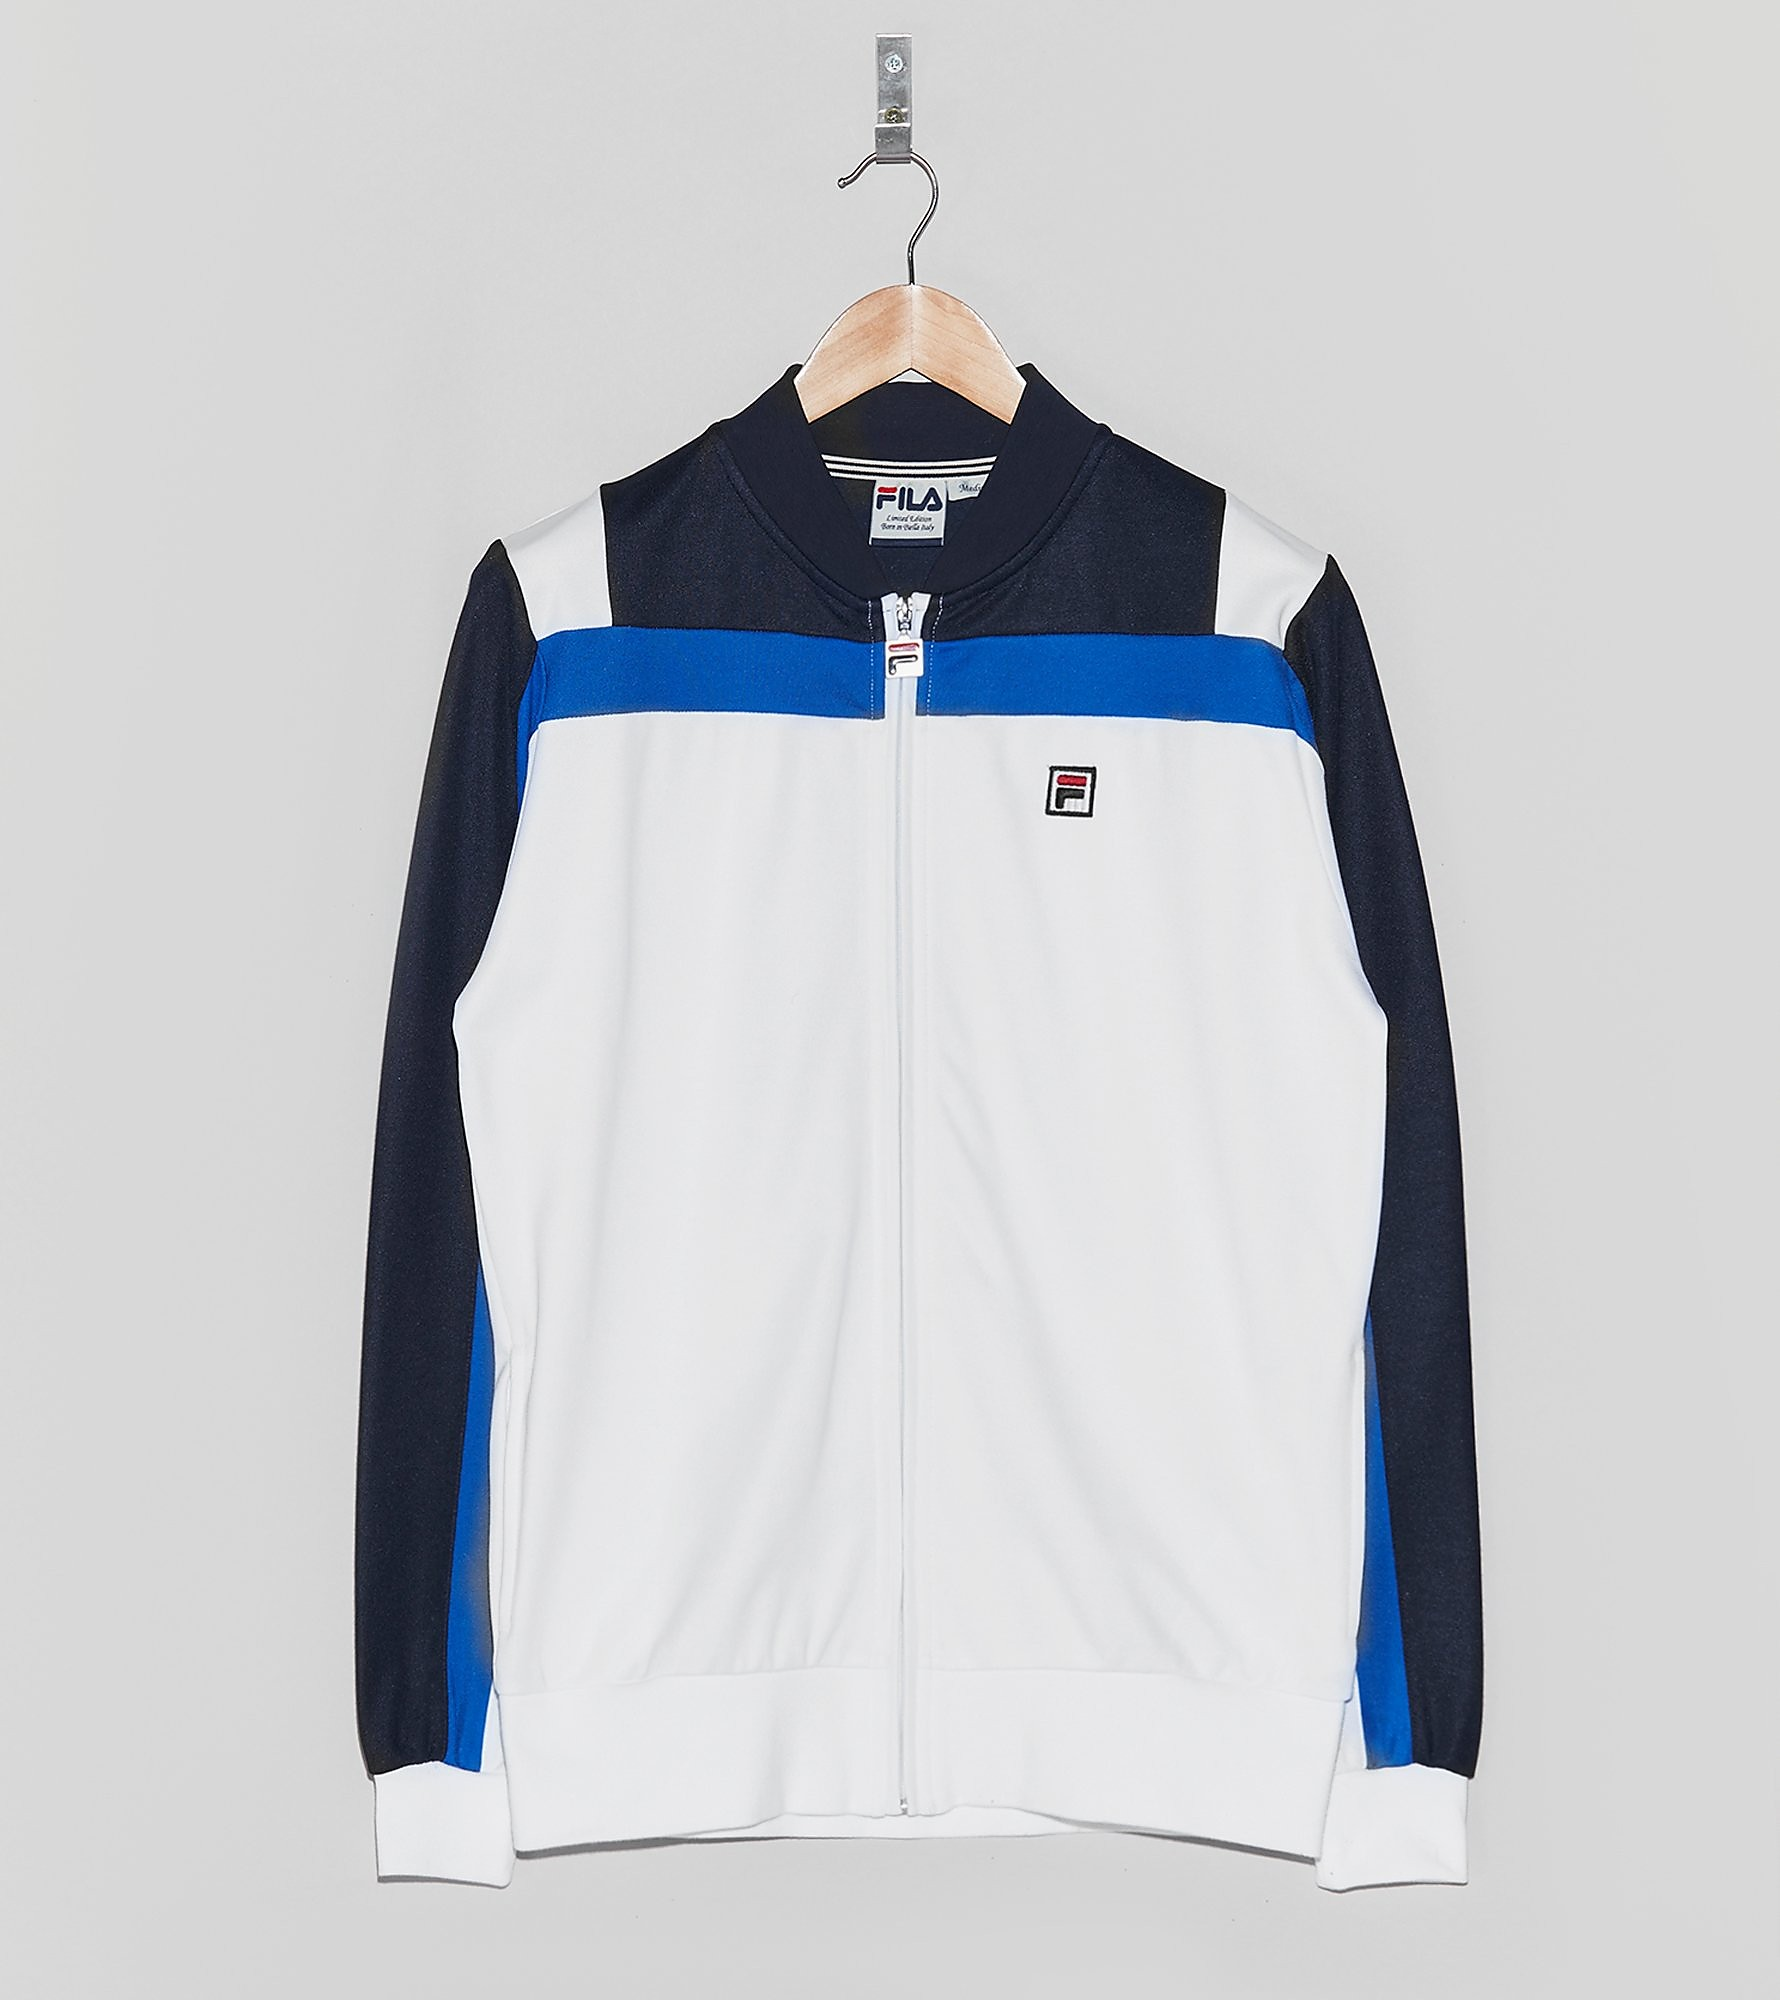 Fila Baseline T-Shirt - size? Exclusive